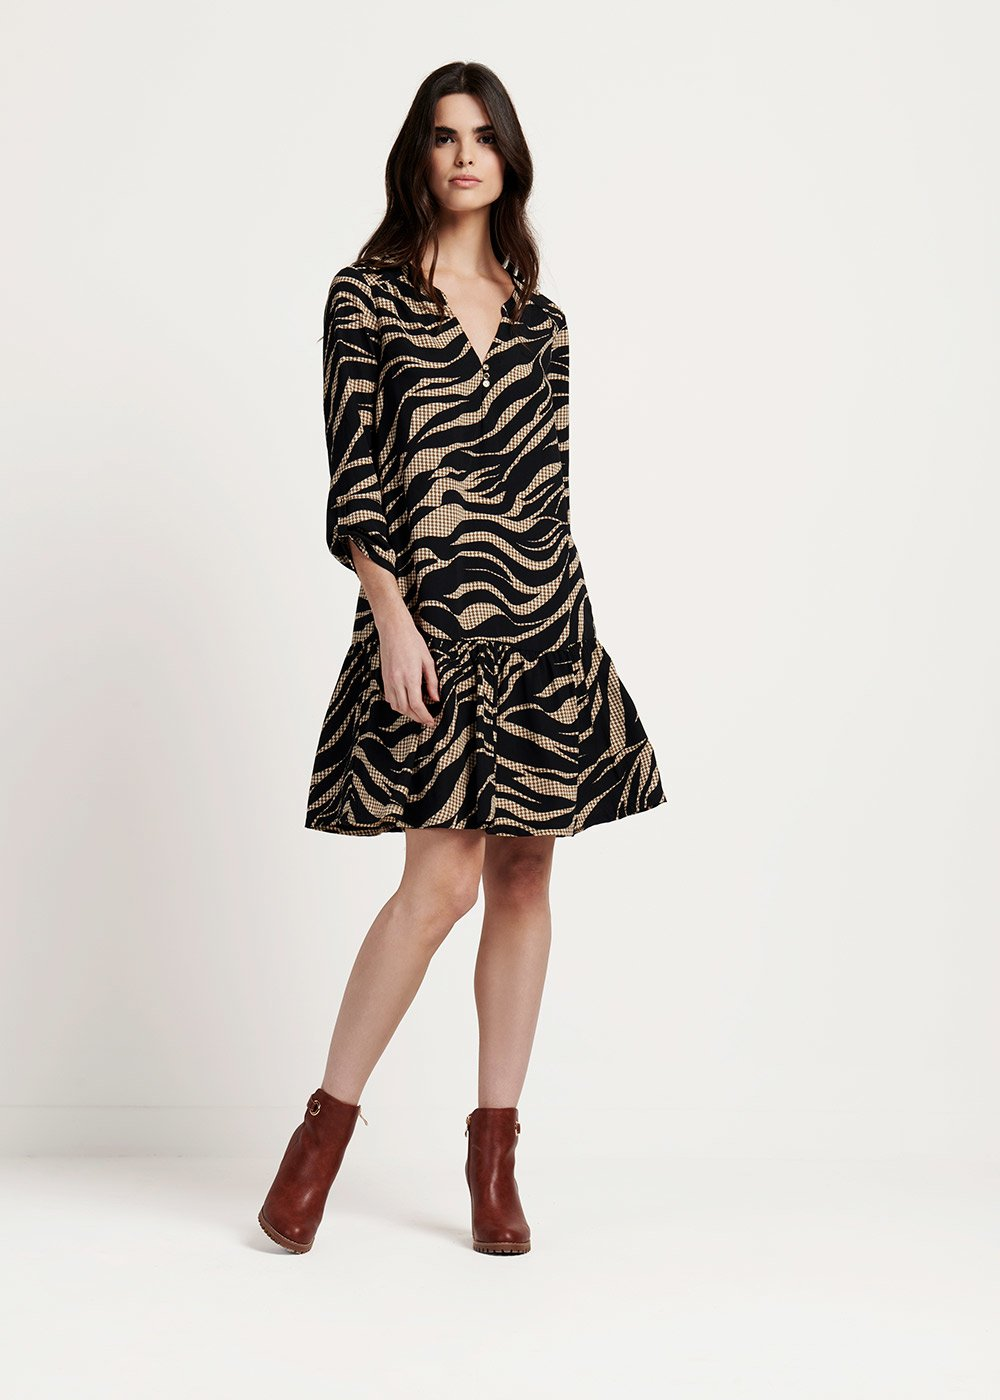 Annique patterned dress with frills at the bottom - Black / Doeskin-Fantasia - Woman